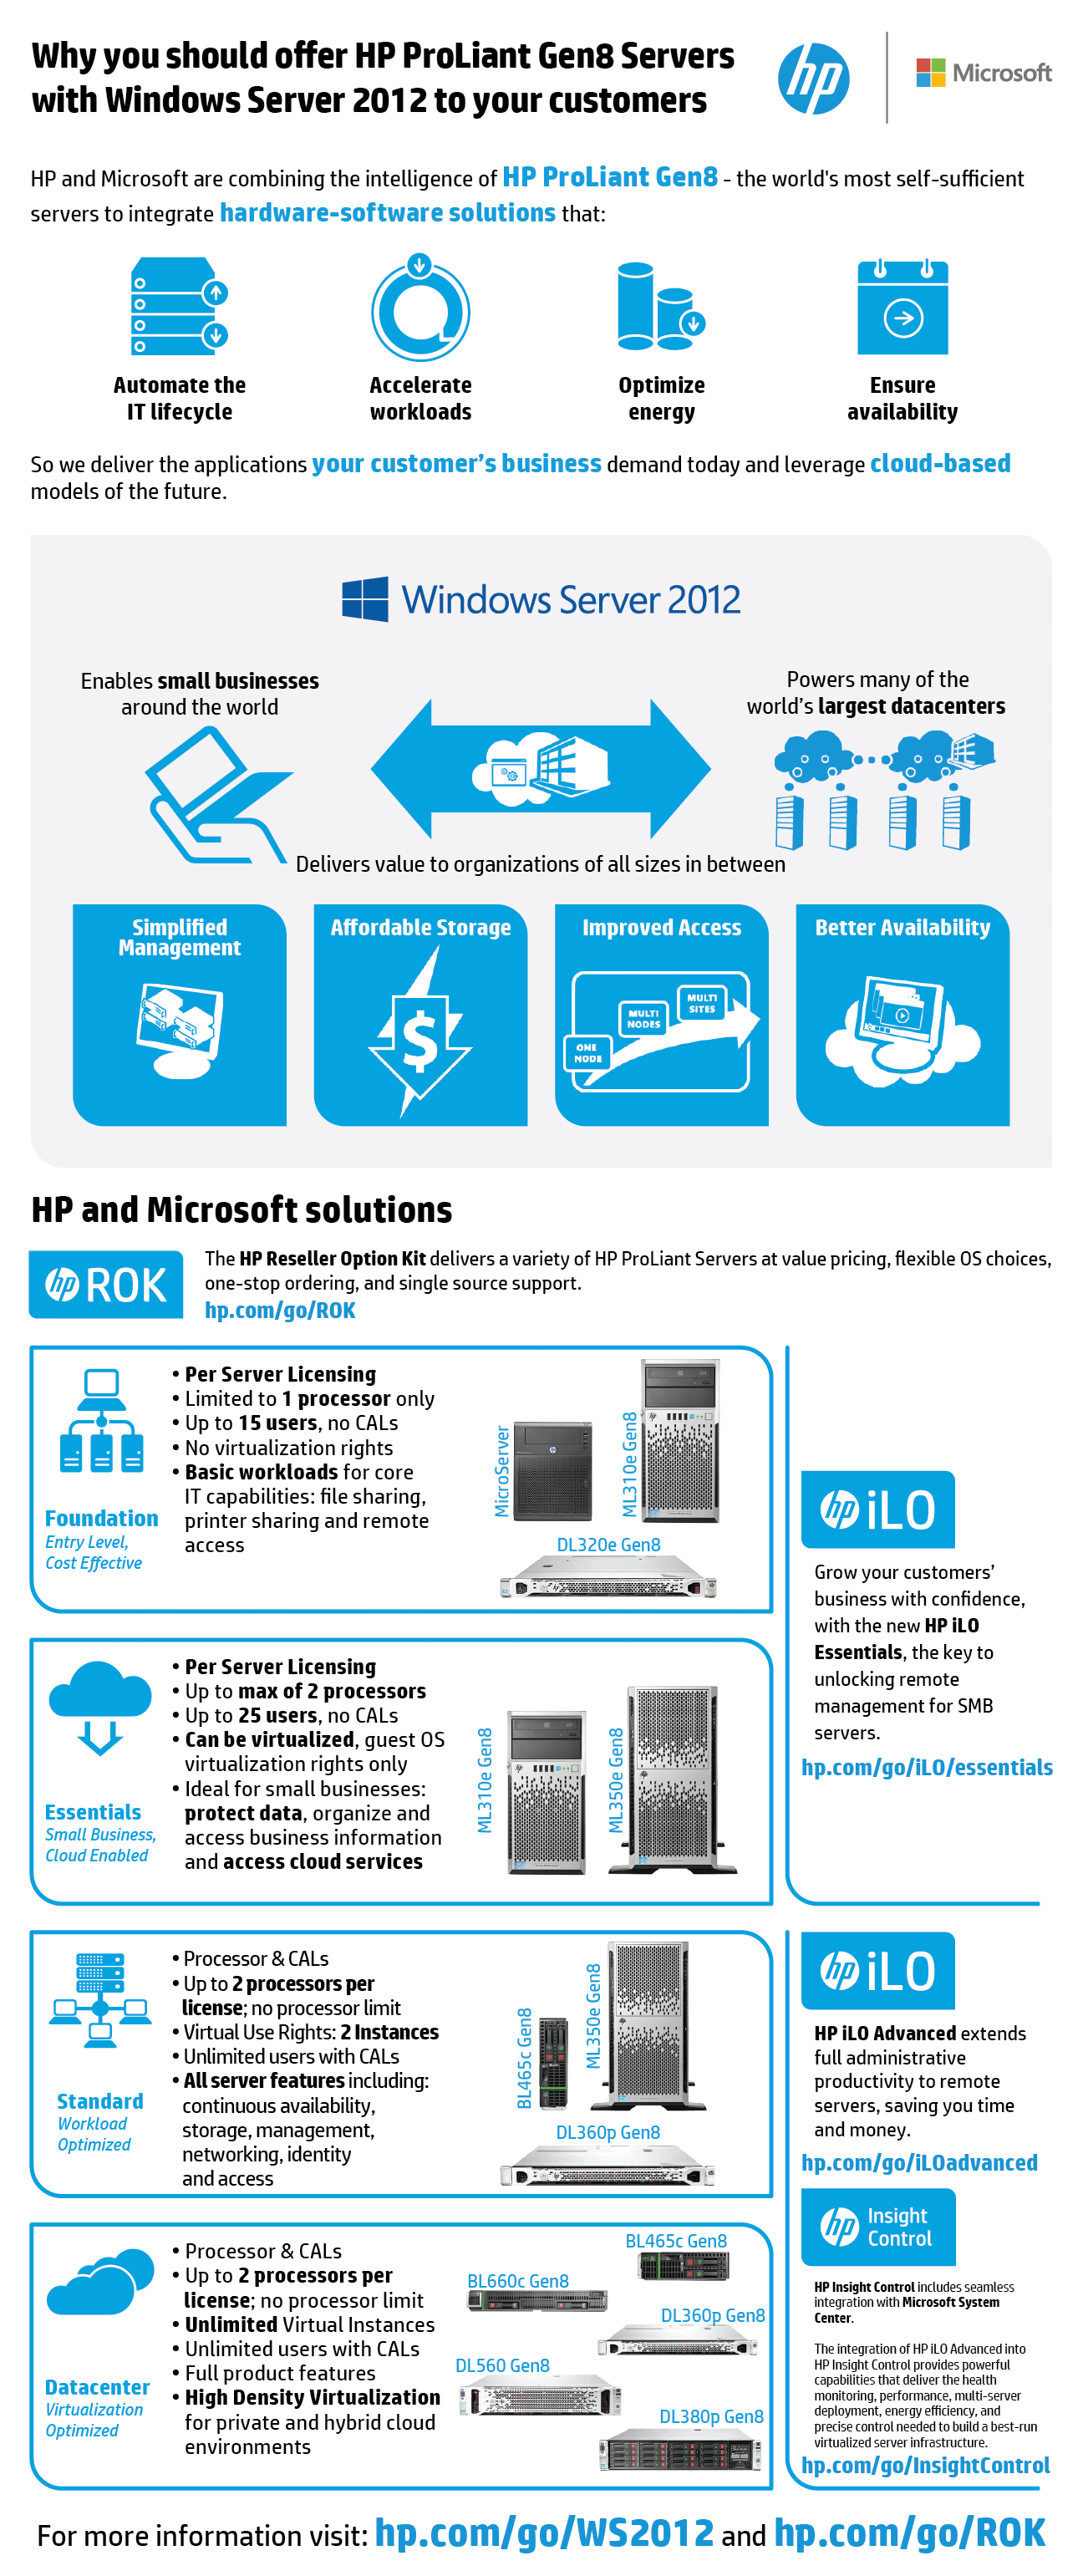 2013-04-30-Why-HP-ProLiant-Gen8-with-WS2012.png